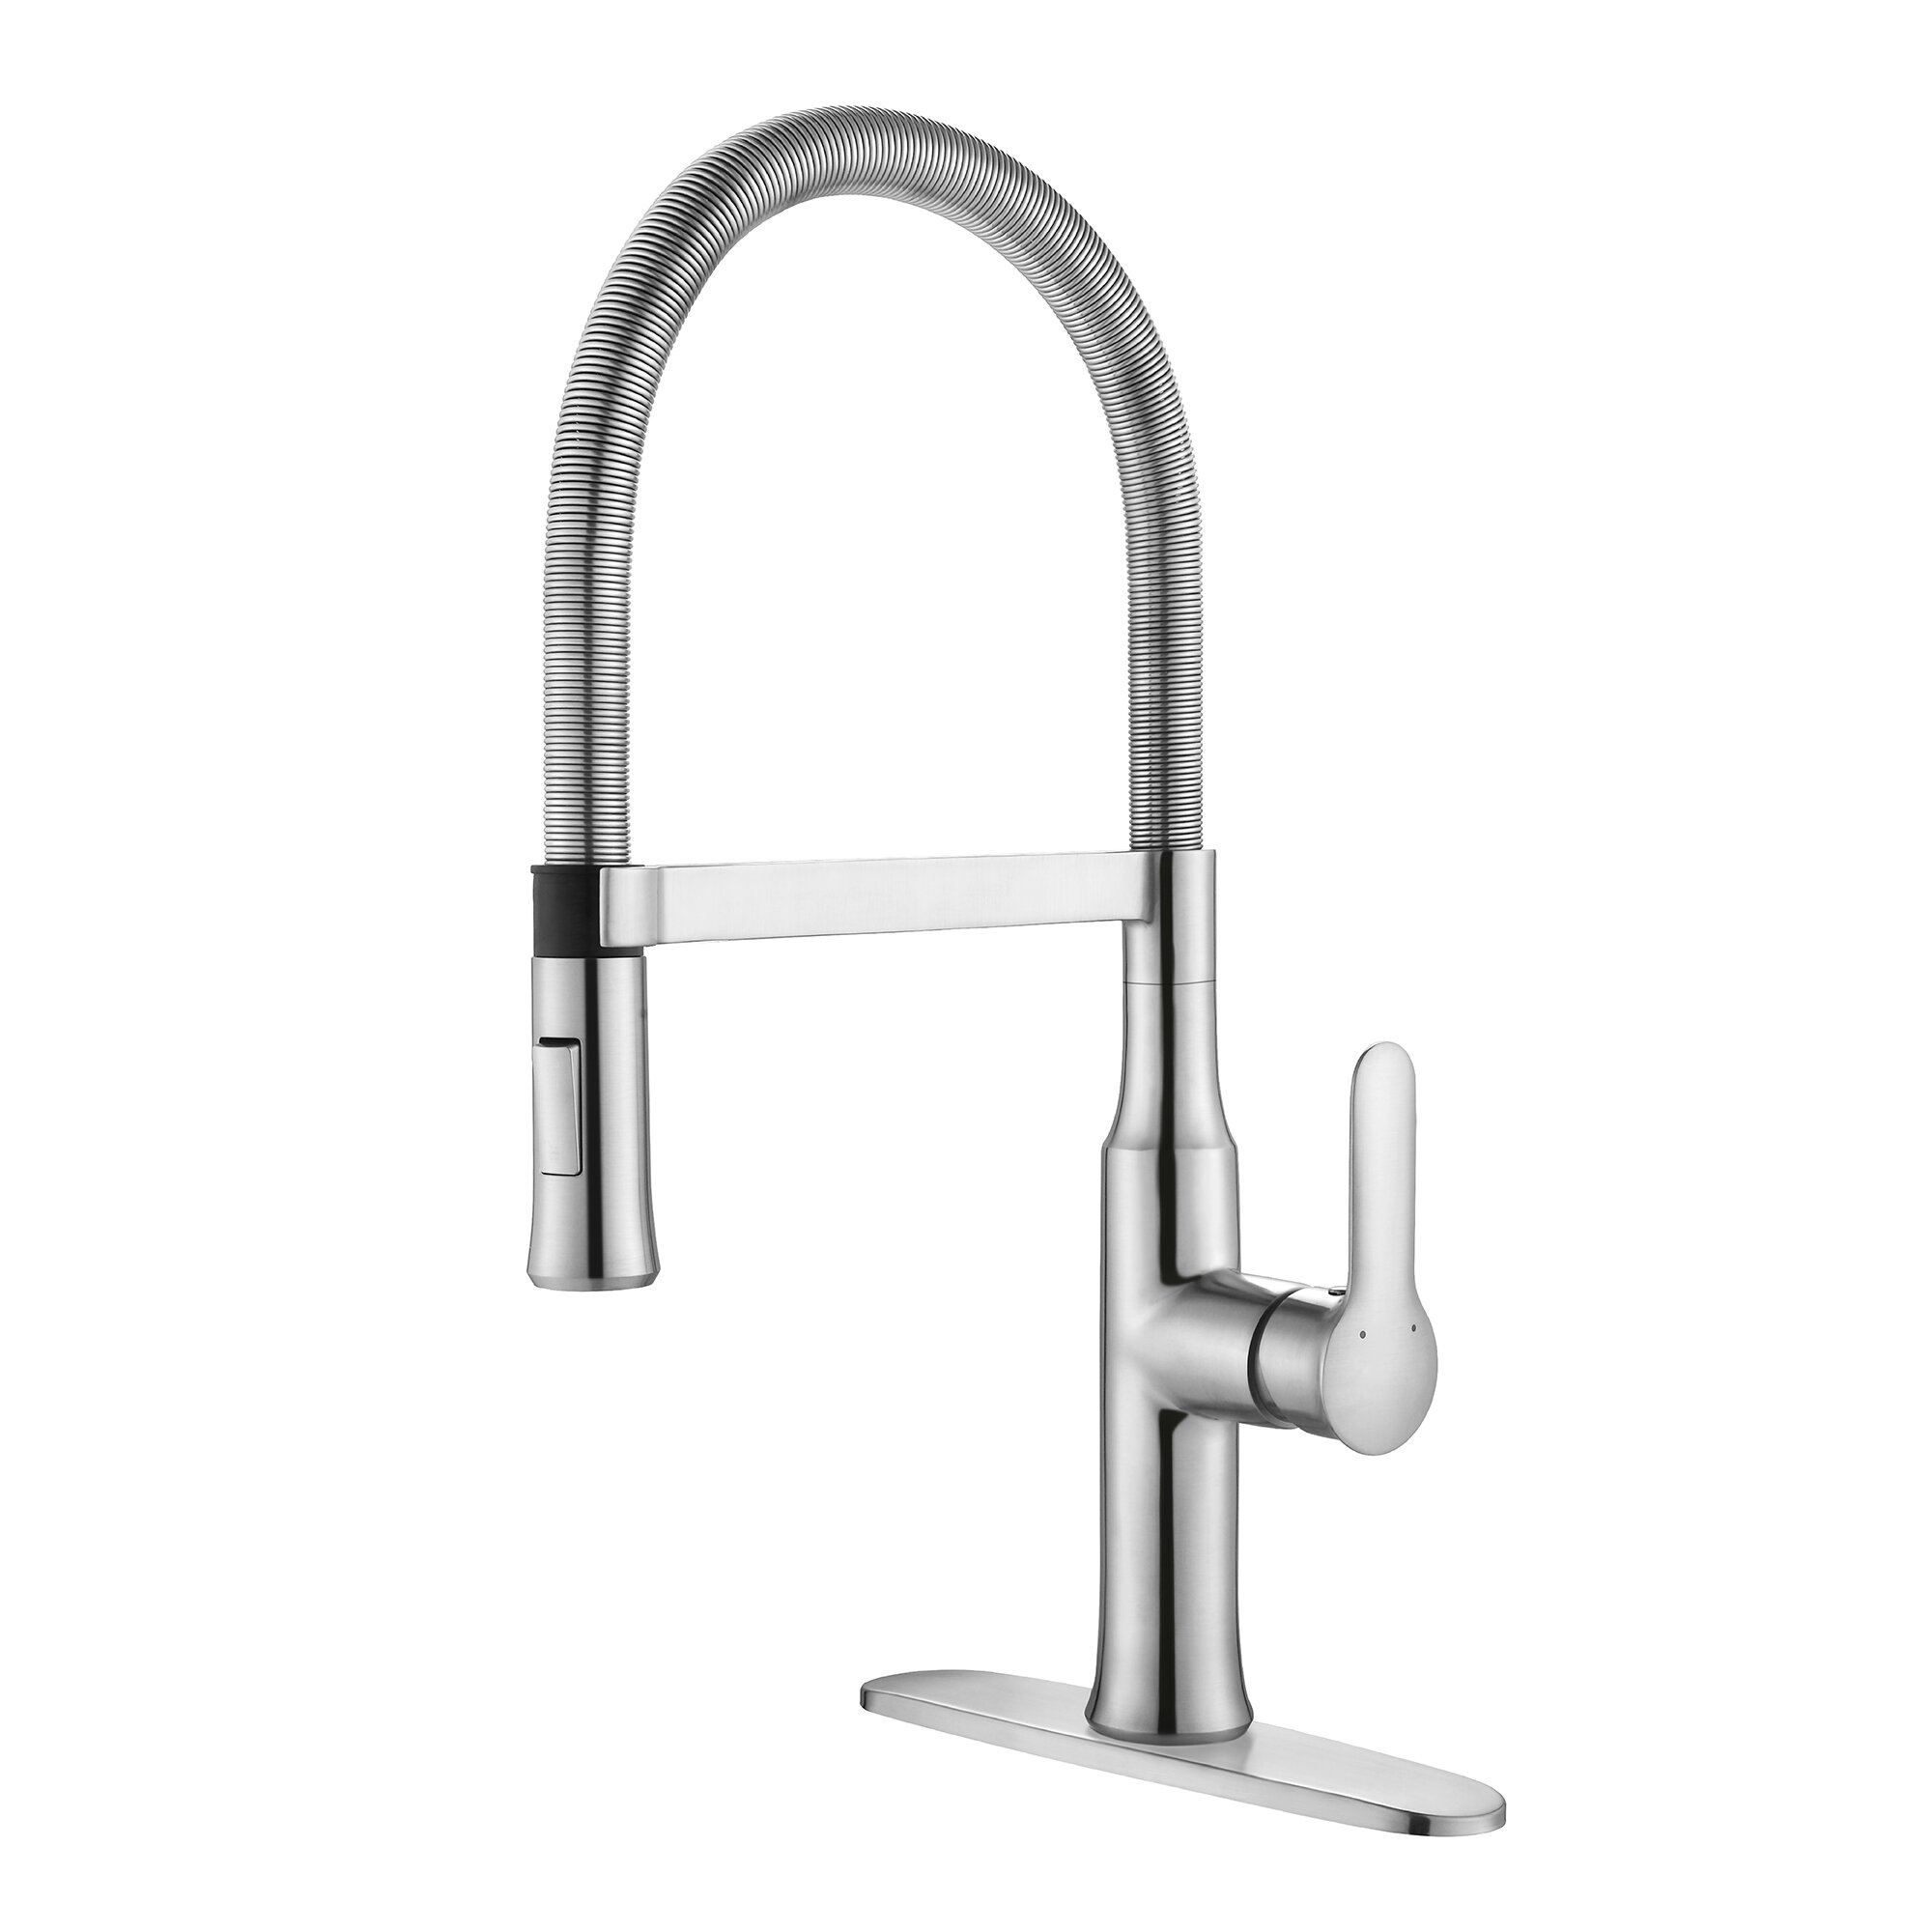 Kraus Nola Single Handle Kitchen Faucet with Dual-Function Sprayer ...